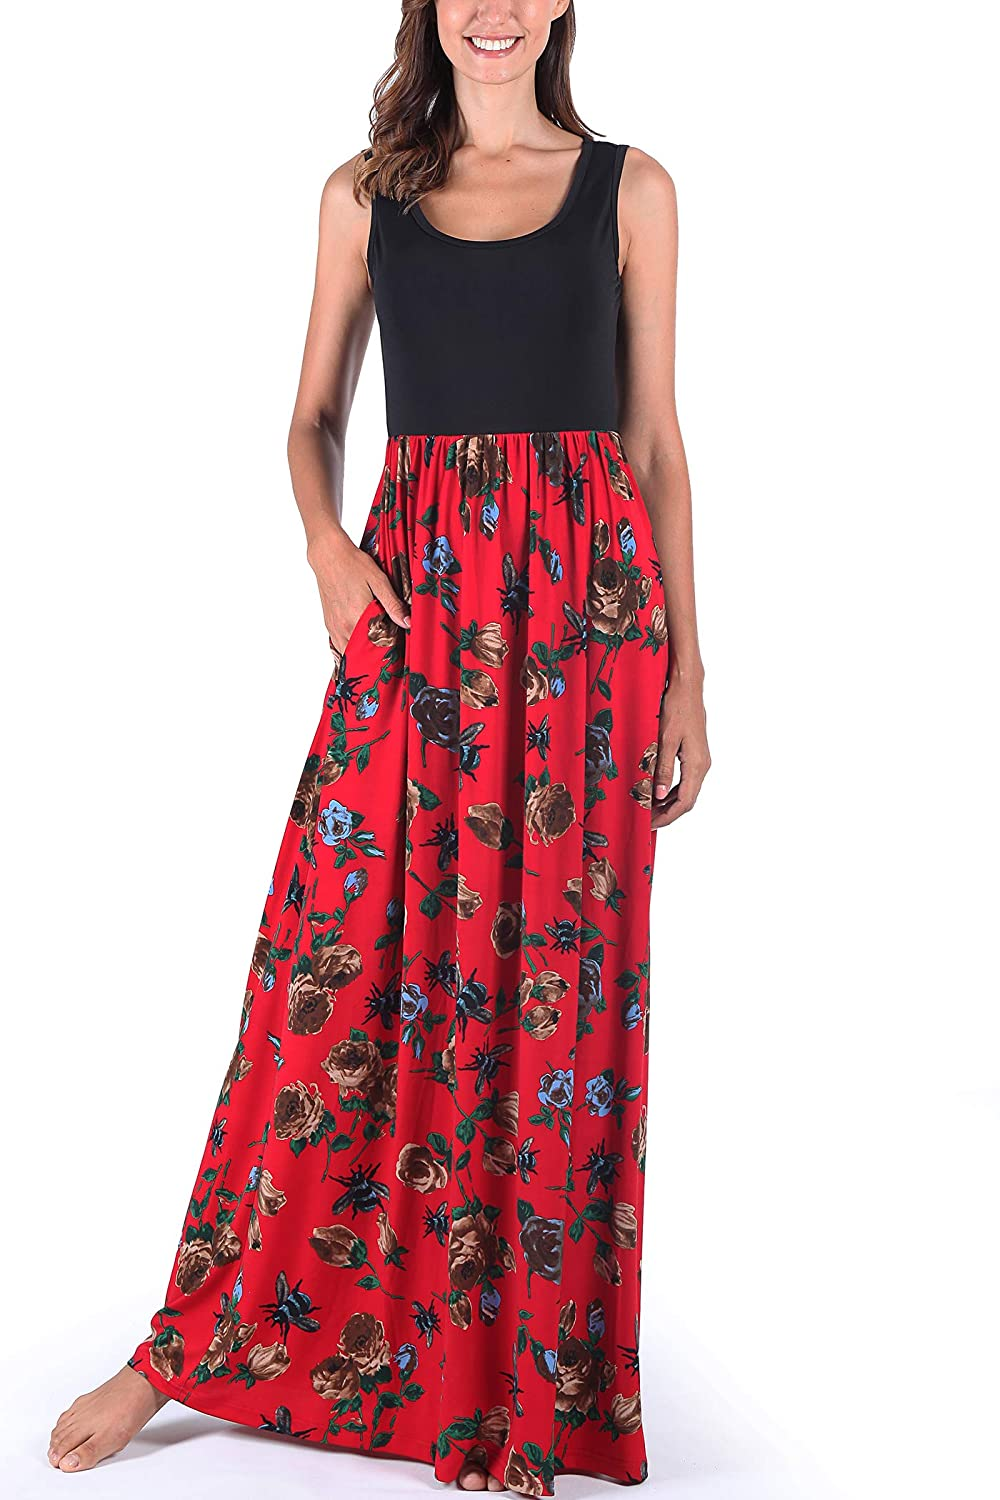 Black  Red Comila Women's Summer Sleeveless Floral Print Tank Long Maxi Dress with Pockets